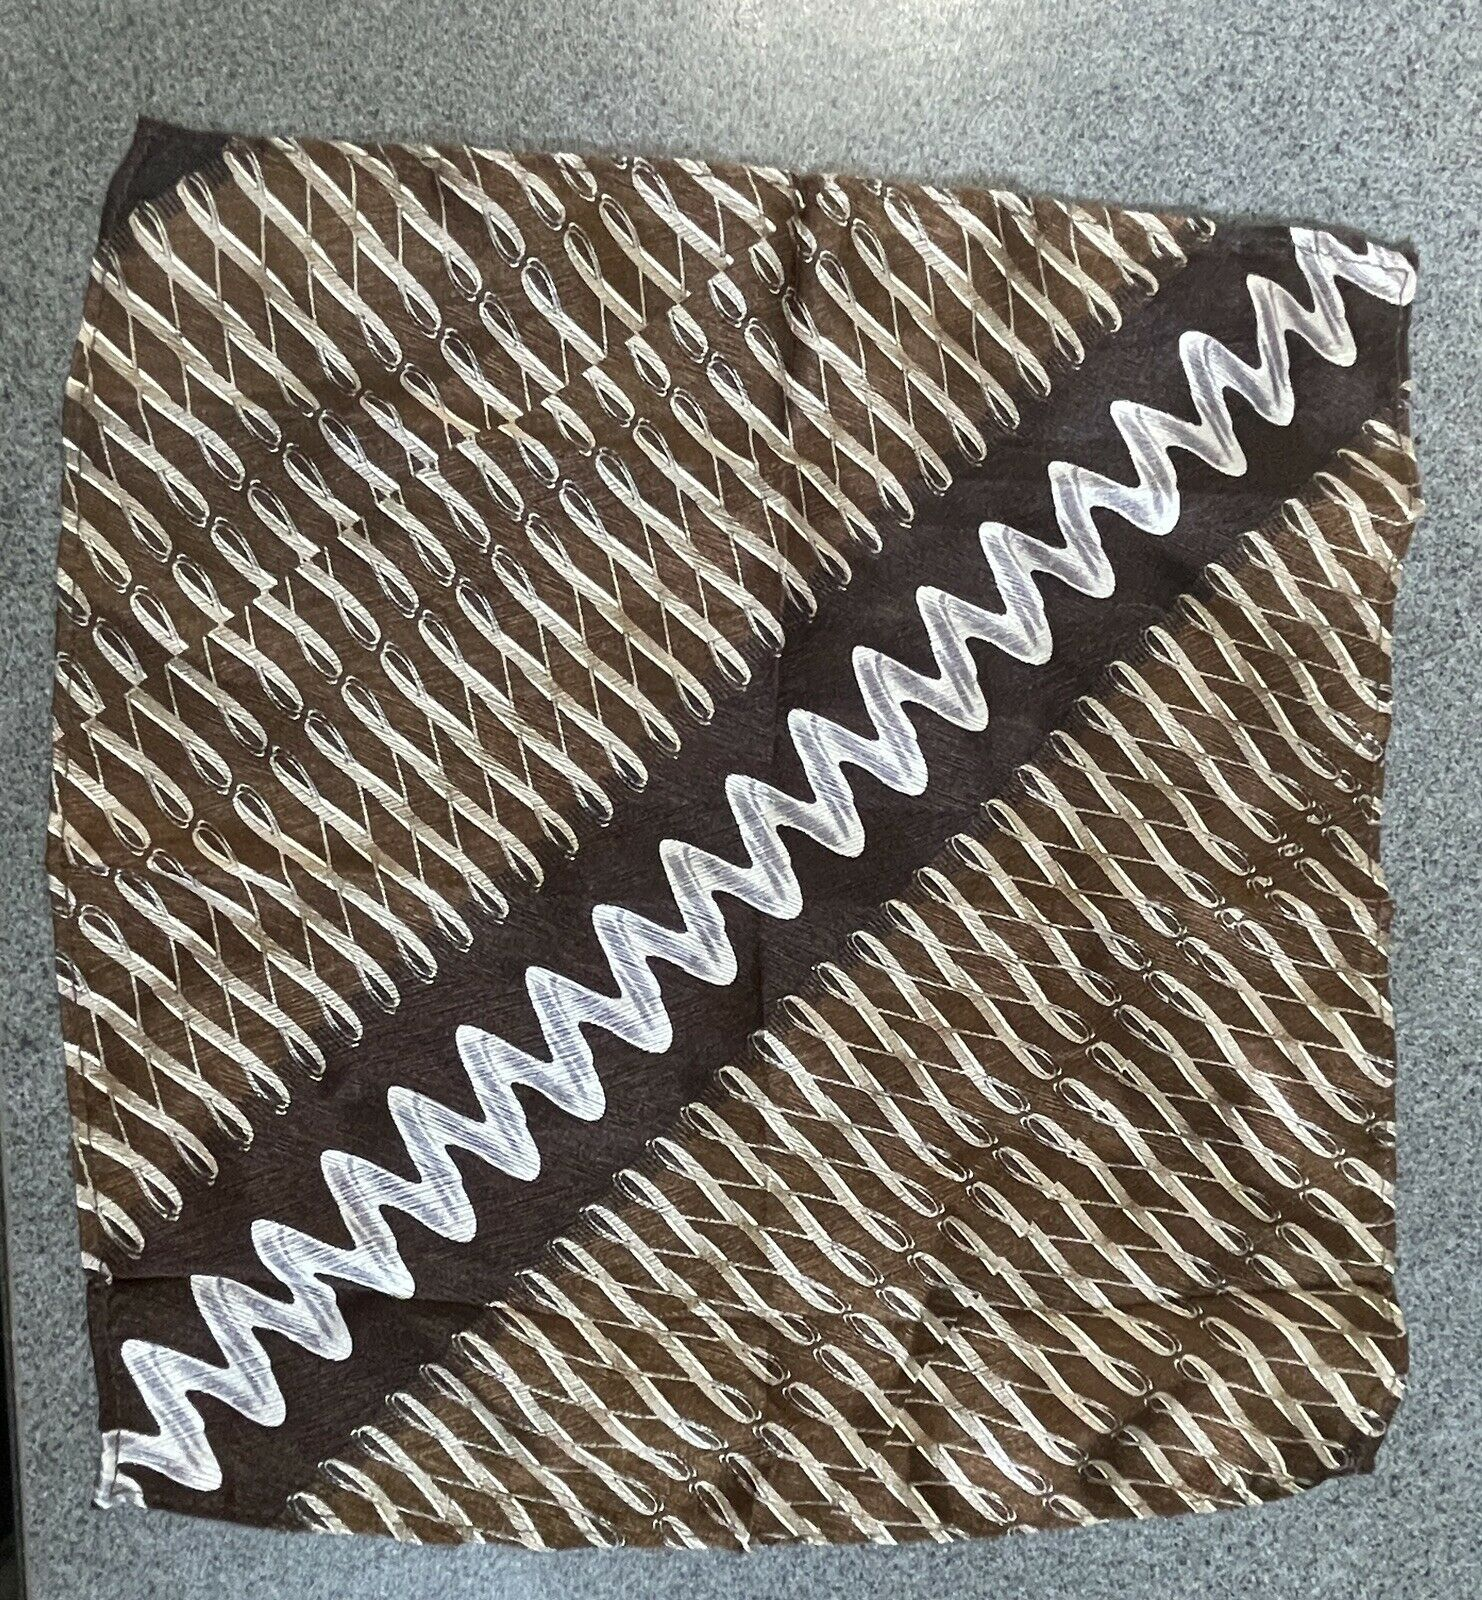 100% Silk Handkerchief Pocket Square Various Shades Of Brown w/ Squiggly Lines